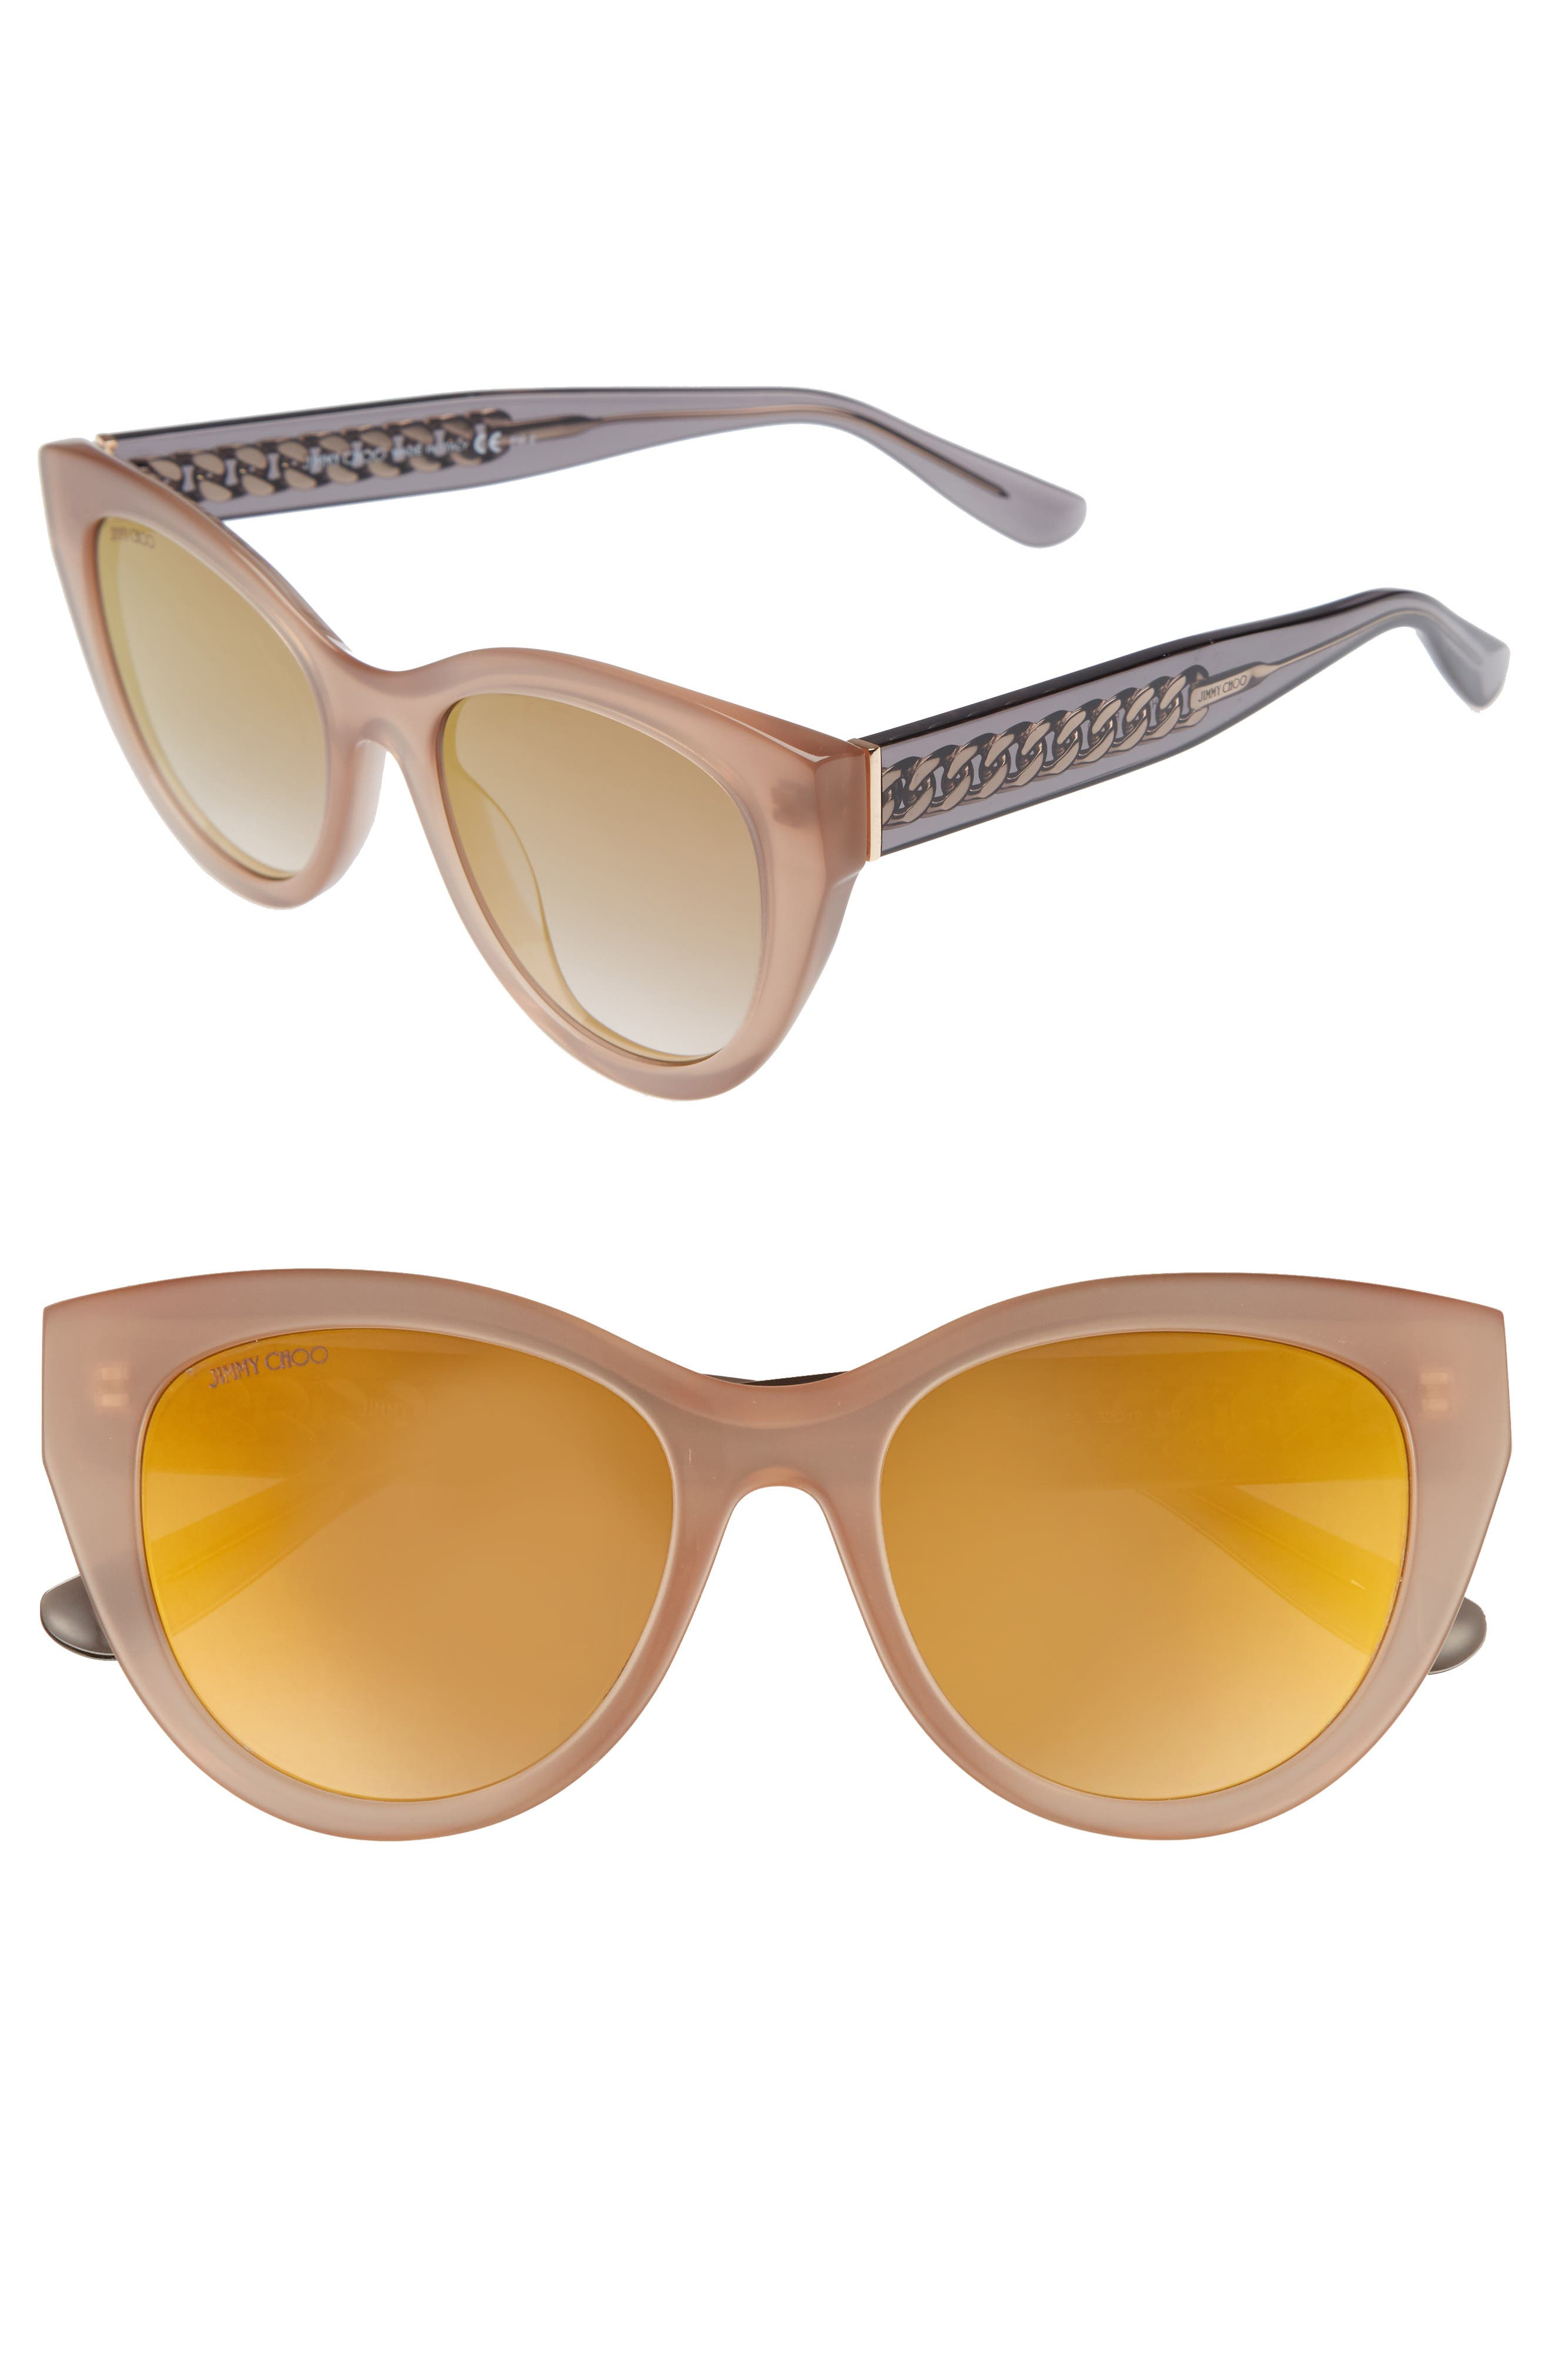 Chana 52mm Gradient Sunglasses,                             Main thumbnail 1, color,                             Nude